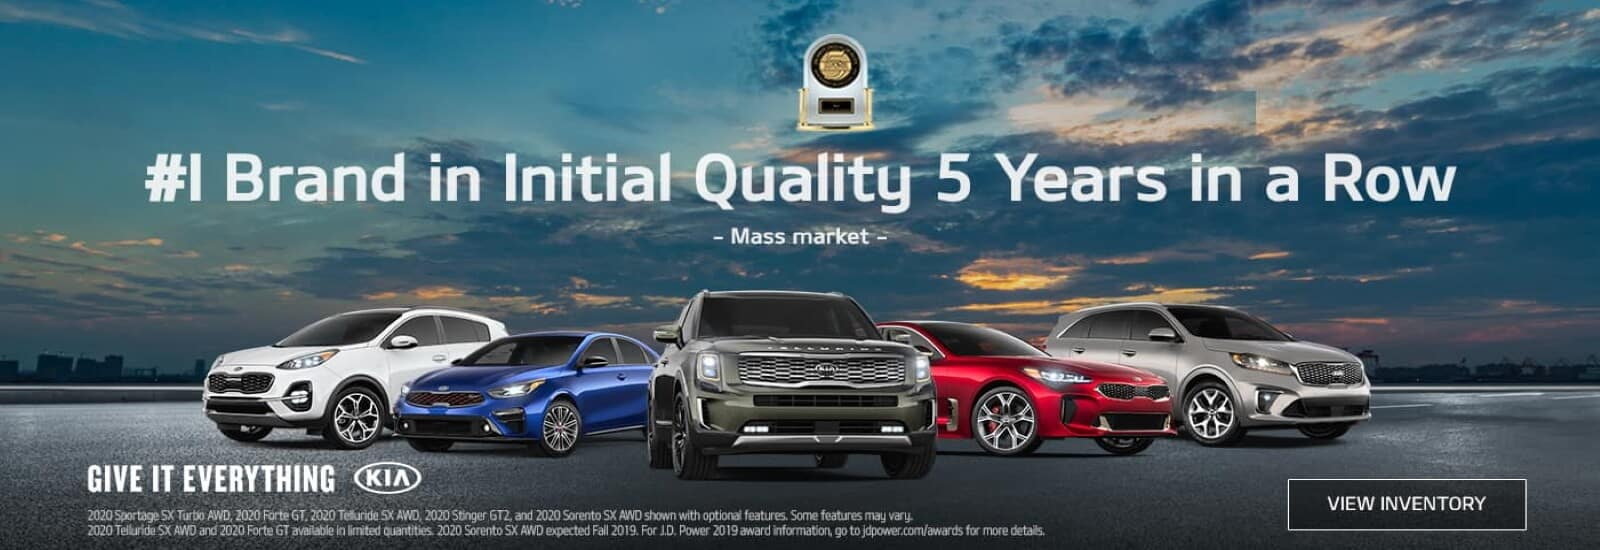 Kia is the #1 Brand in Initial Quality 5 Years in a Row